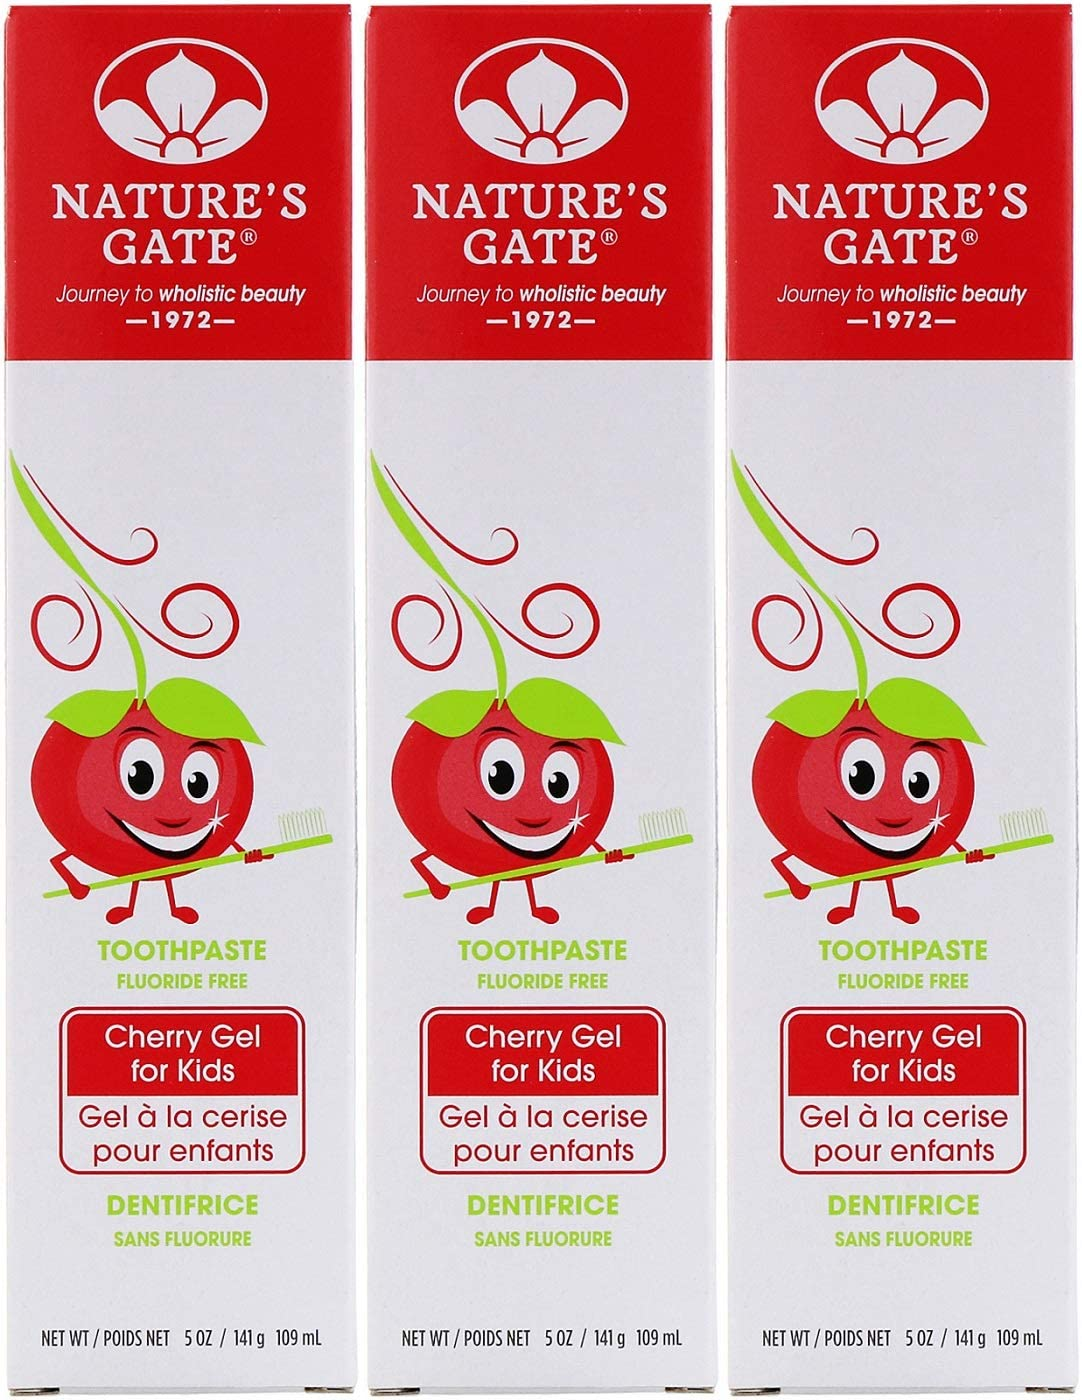 Nature's Gate, Fluoride Free Toothpaste, Cherry Gel for Kids, 5 oz (141 g)(pack of 3)